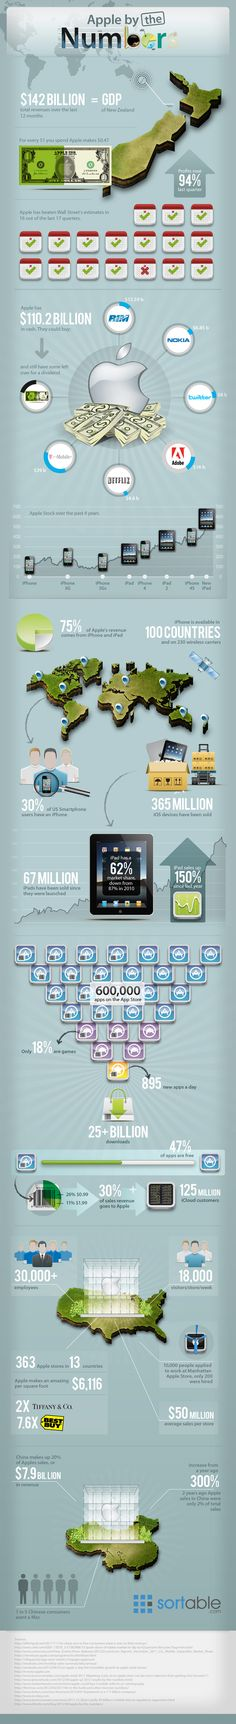 Apple in Numbers.